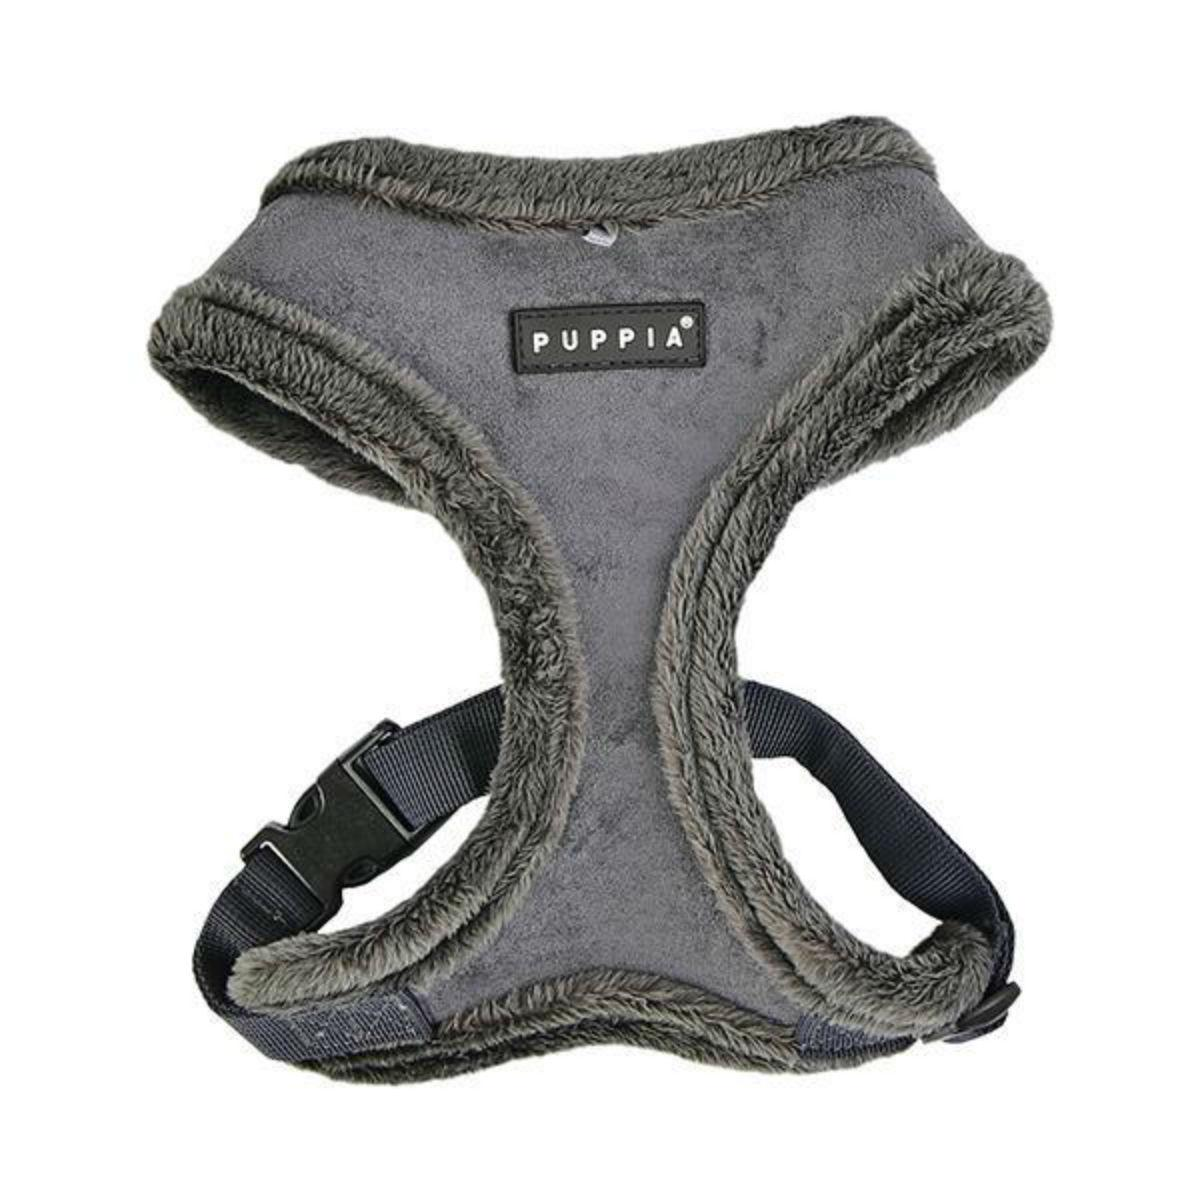 Terry Basic Style Dog Harness by Puppia - Gray